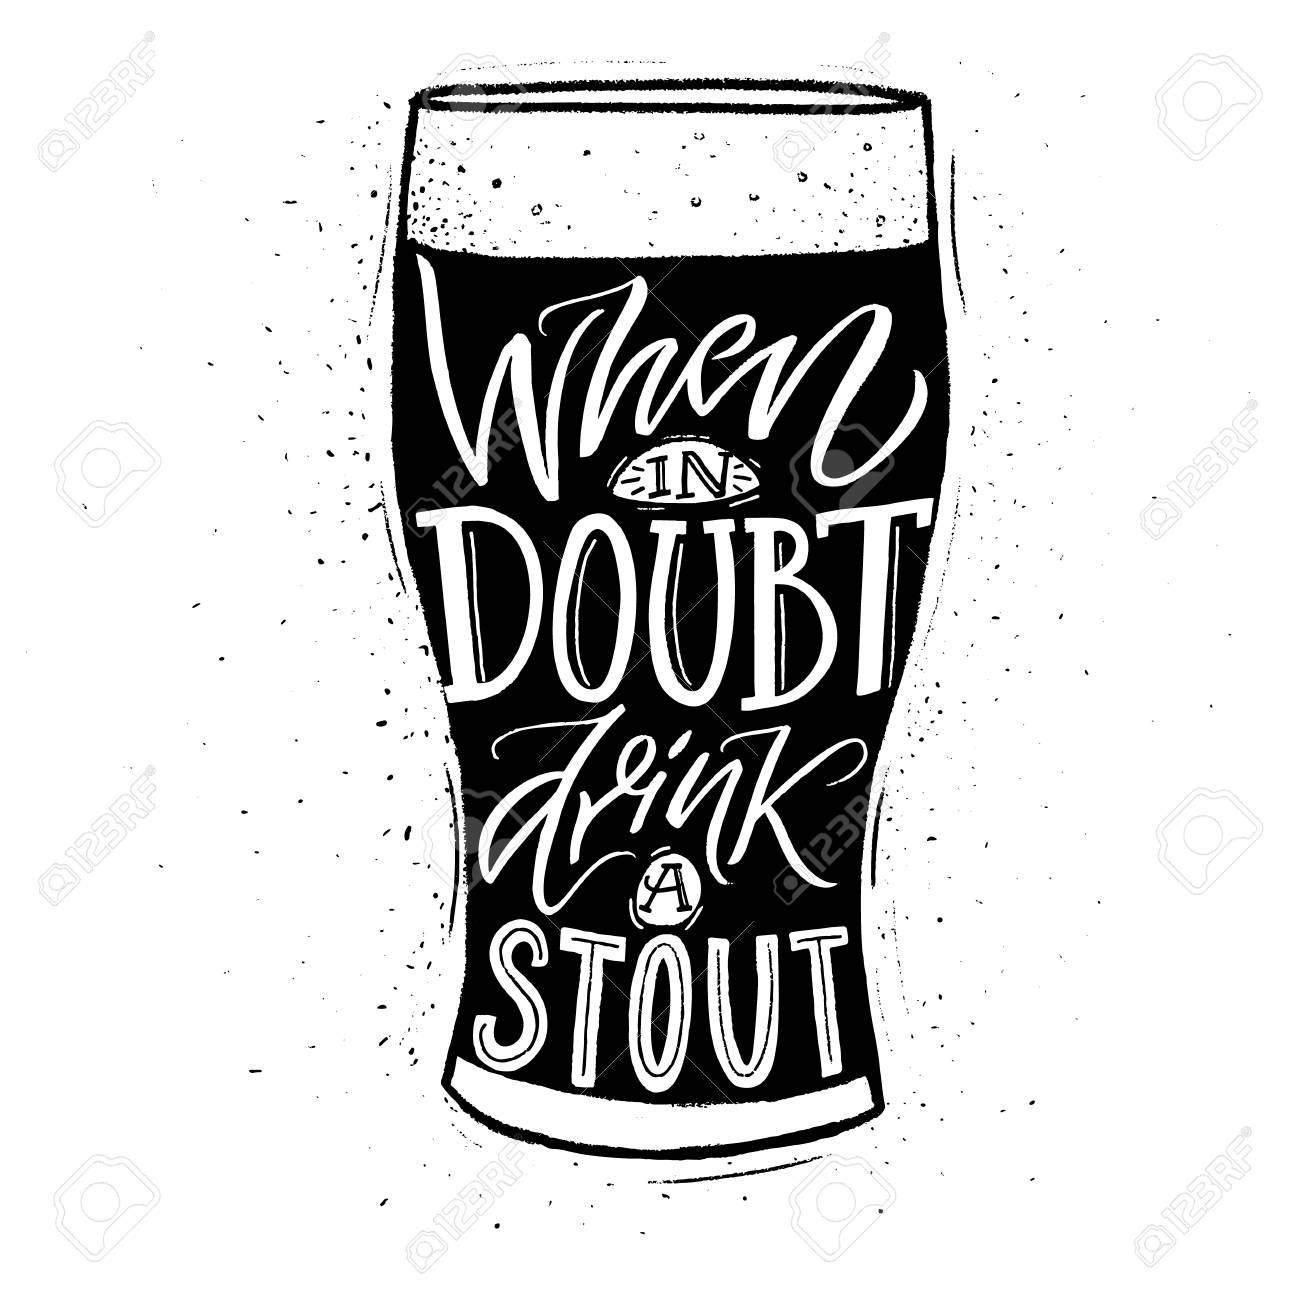 When in doubt, drink a stout. Funny inspirational quote about..